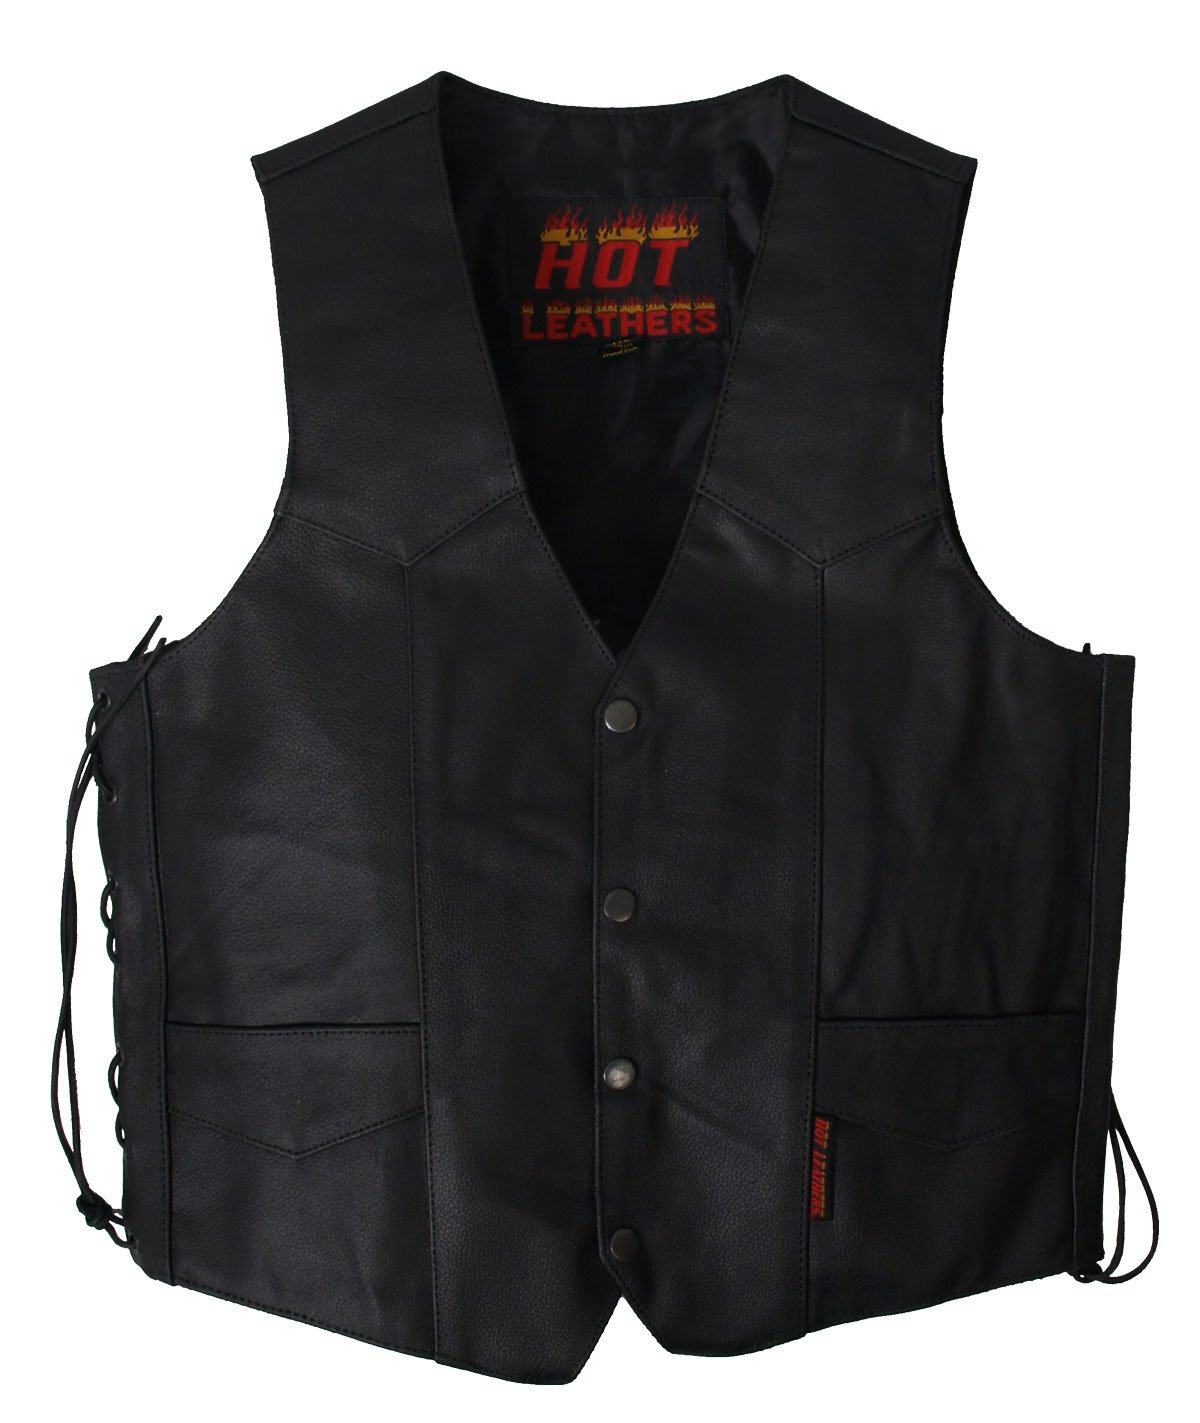 Hot Leathers Men's Heavy Weight Leather Vest (Black, Large) by Hot Leathers